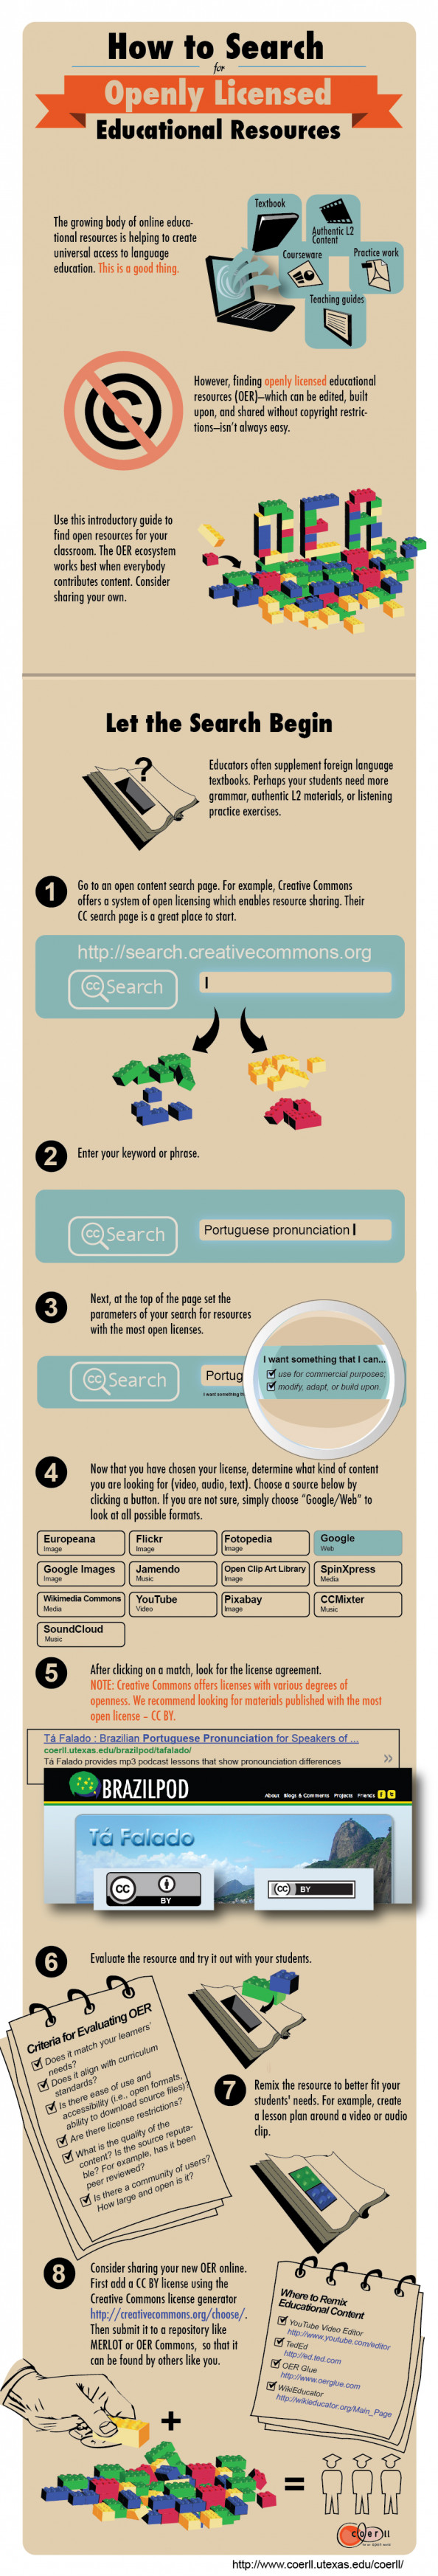 How to Search for Openly Licensed Educational Resources Infographic